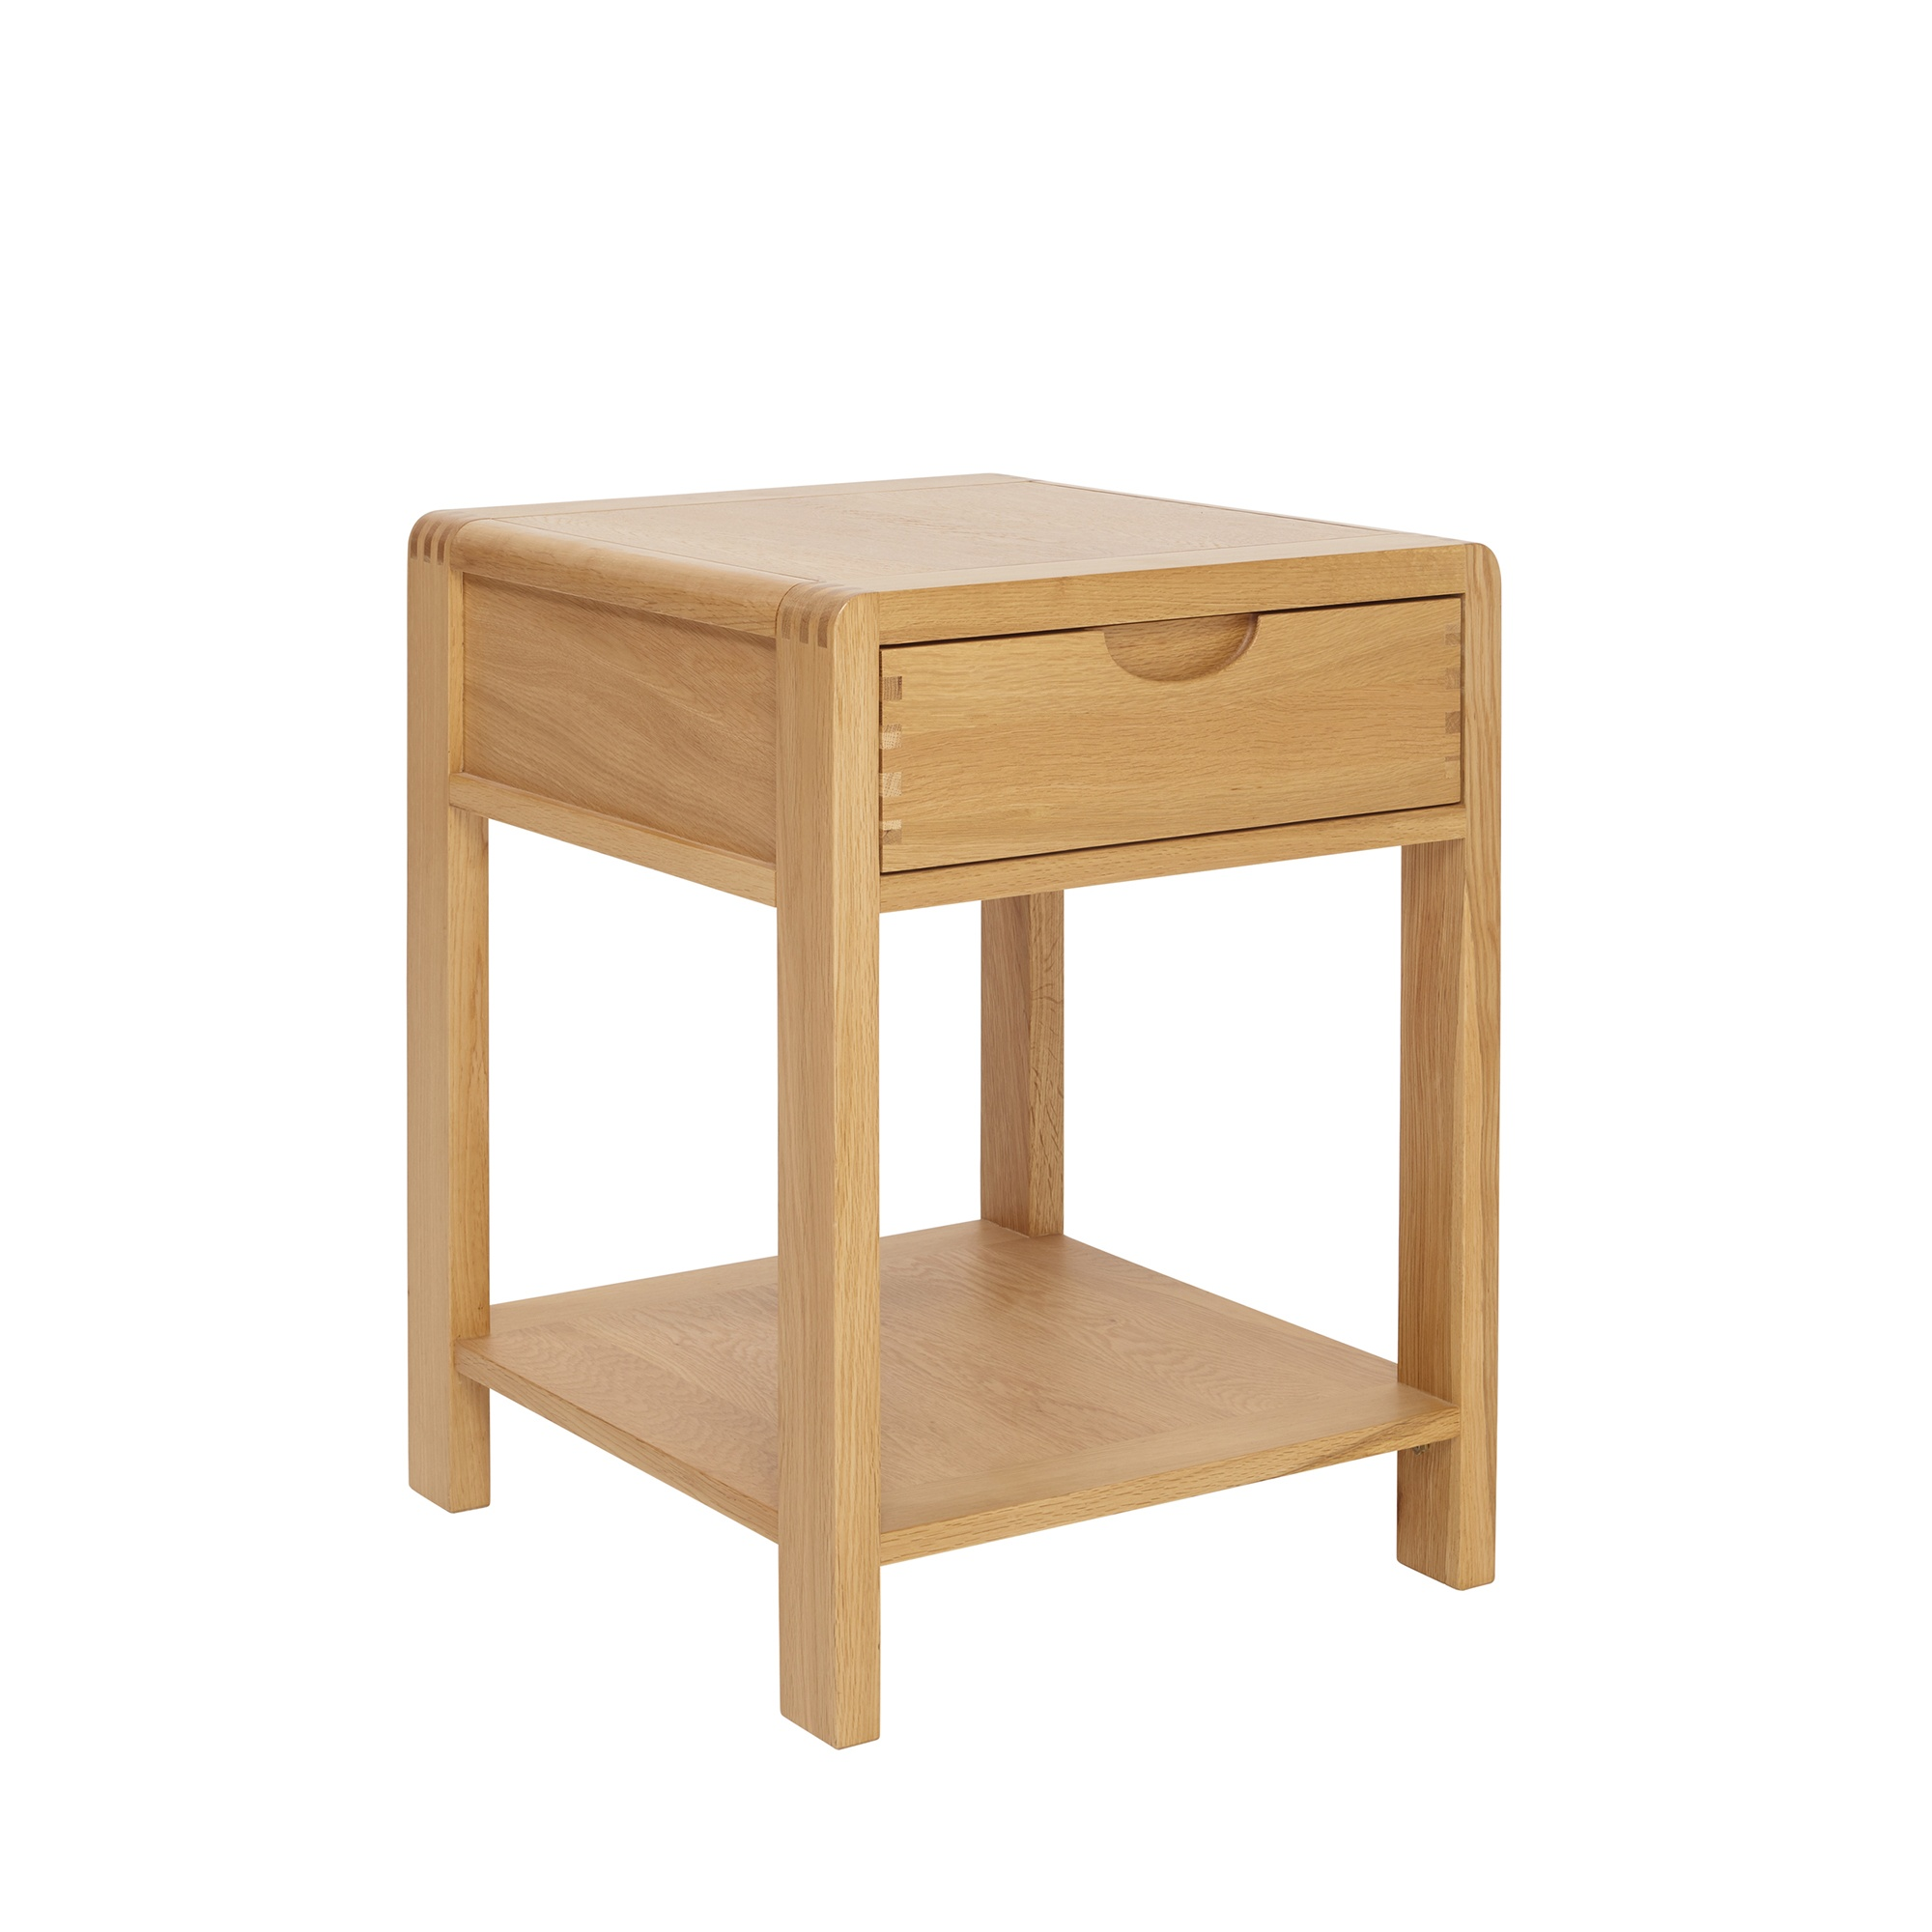 Ercol bosco dining lamp table ercol cookes furniture ercol bosco dining lamp table aloadofball Image collections